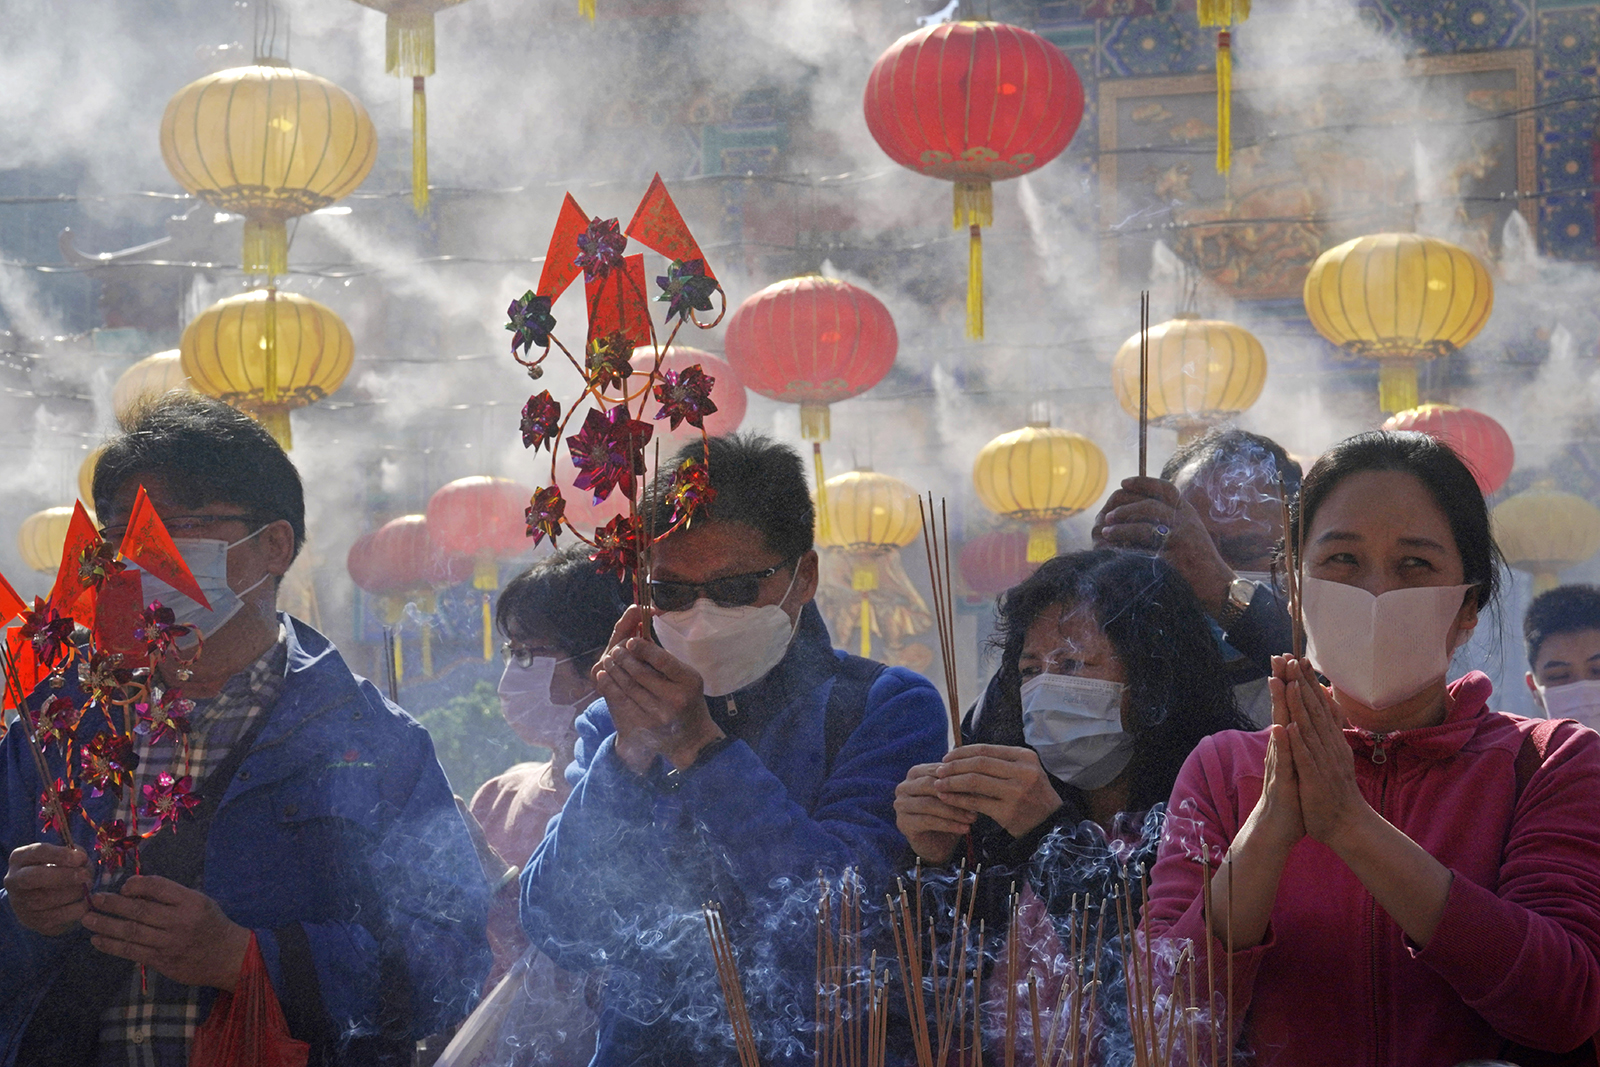 Buddhist worshippers burn joss sticks as they pray at the Wong Tai Sin Temple, in Hong Kong, Friday, Feb. 12, 2021, to celebrate the Lunar New Year, which marks the Year of the Ox in the Chinese zodiac. (AP Photo/Kin Cheung)